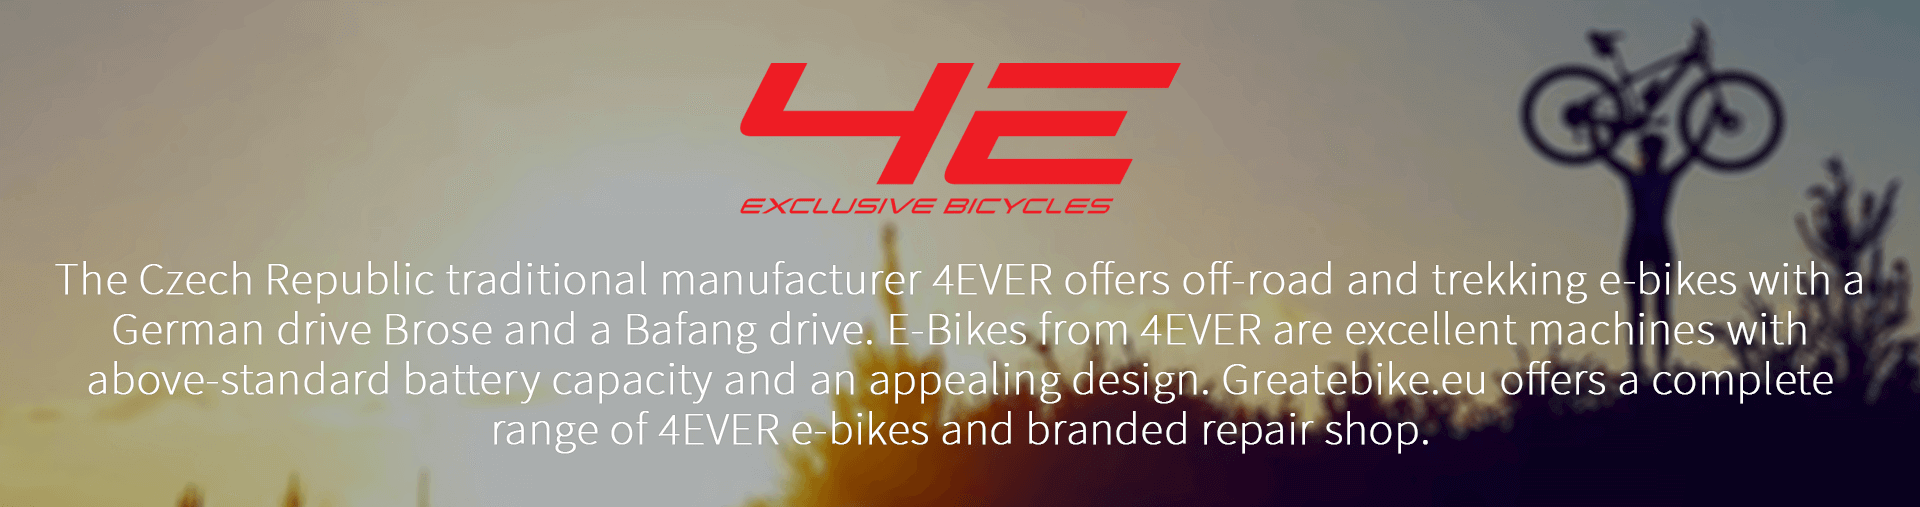 The Czech Republic traditional manufacturer 4EVER offers off-road and trekking e-bikes with a German drive Brose and a Bafang drive. E-Bikes from 4EVER are excellent machines with above-standard battery capacity and an appealing design. Greatebike.eu offers a complete range of 4EVER e-bikes and branded repair shop.